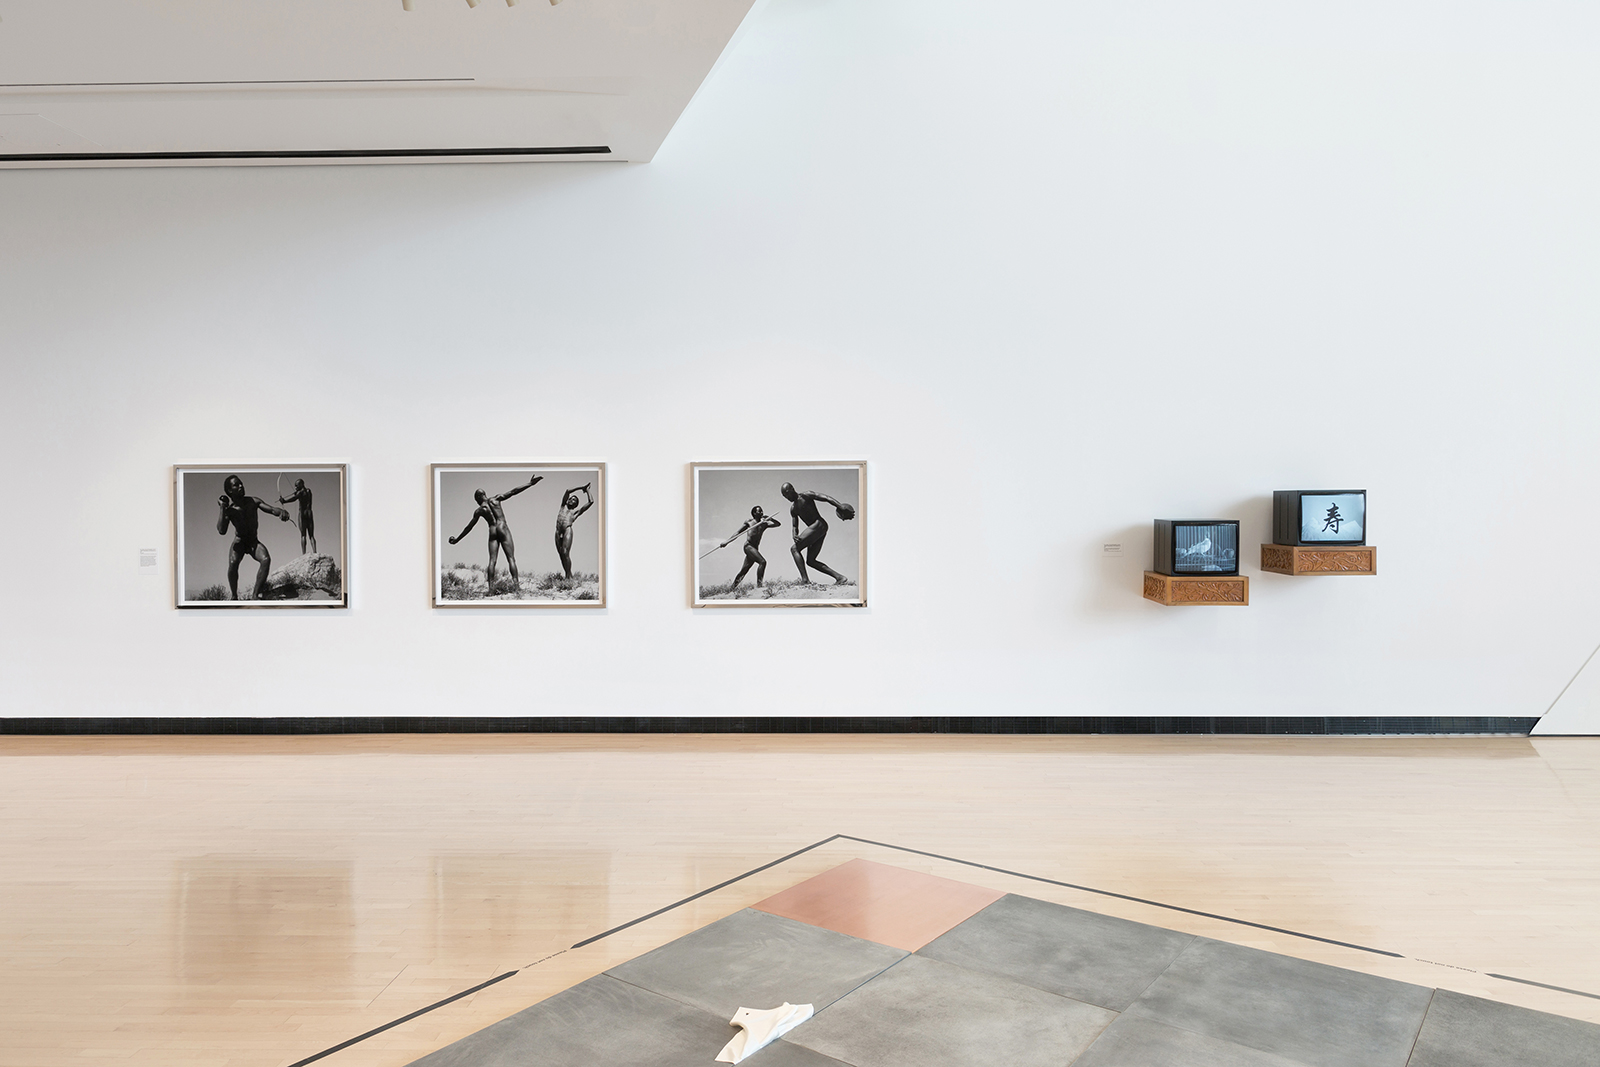 Two videos, three photographs, several related masterpieces, and American art